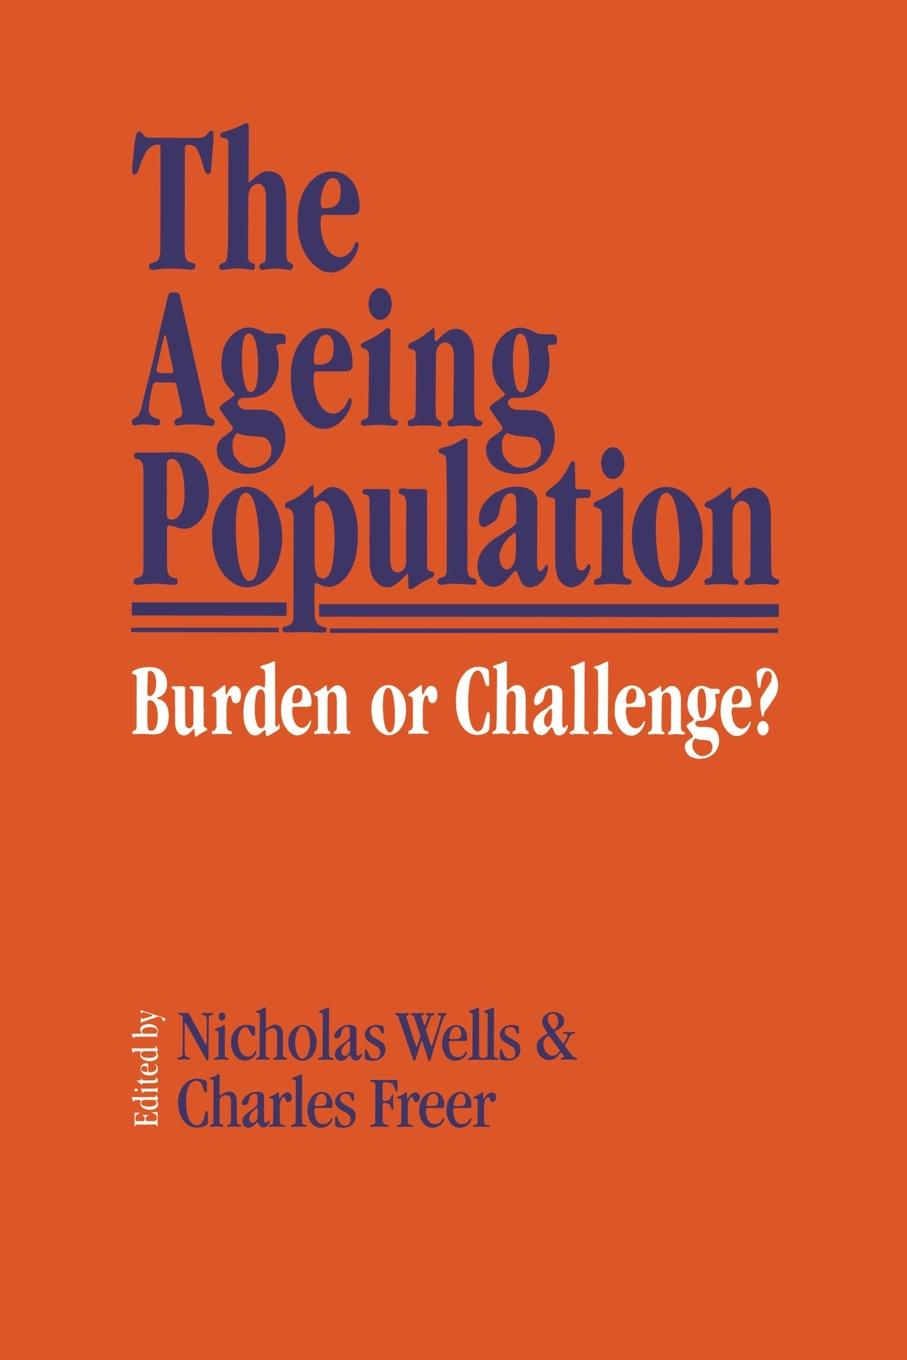 N.E.J. Wells, Charles Freer The Ageing Population. Burden or Challenge?